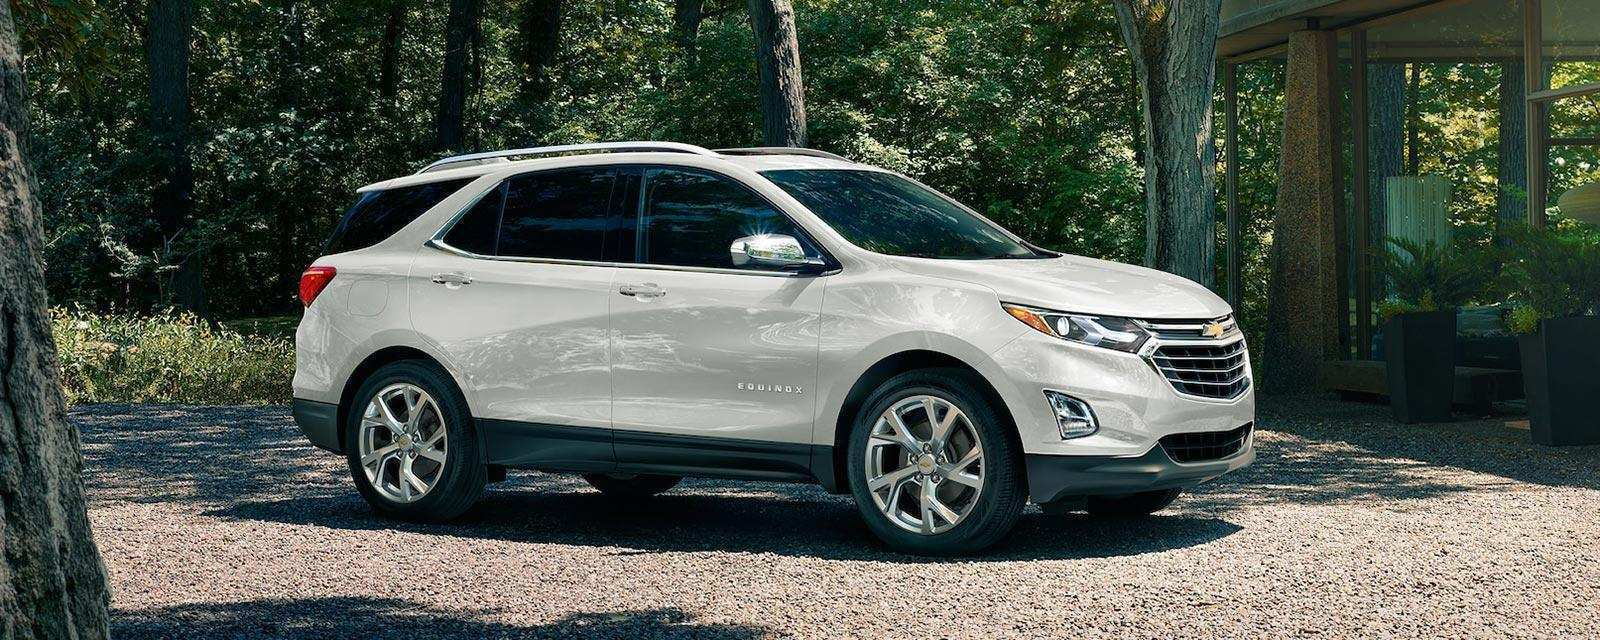 33 Best 2019 Chevrolet Pictures Pictures